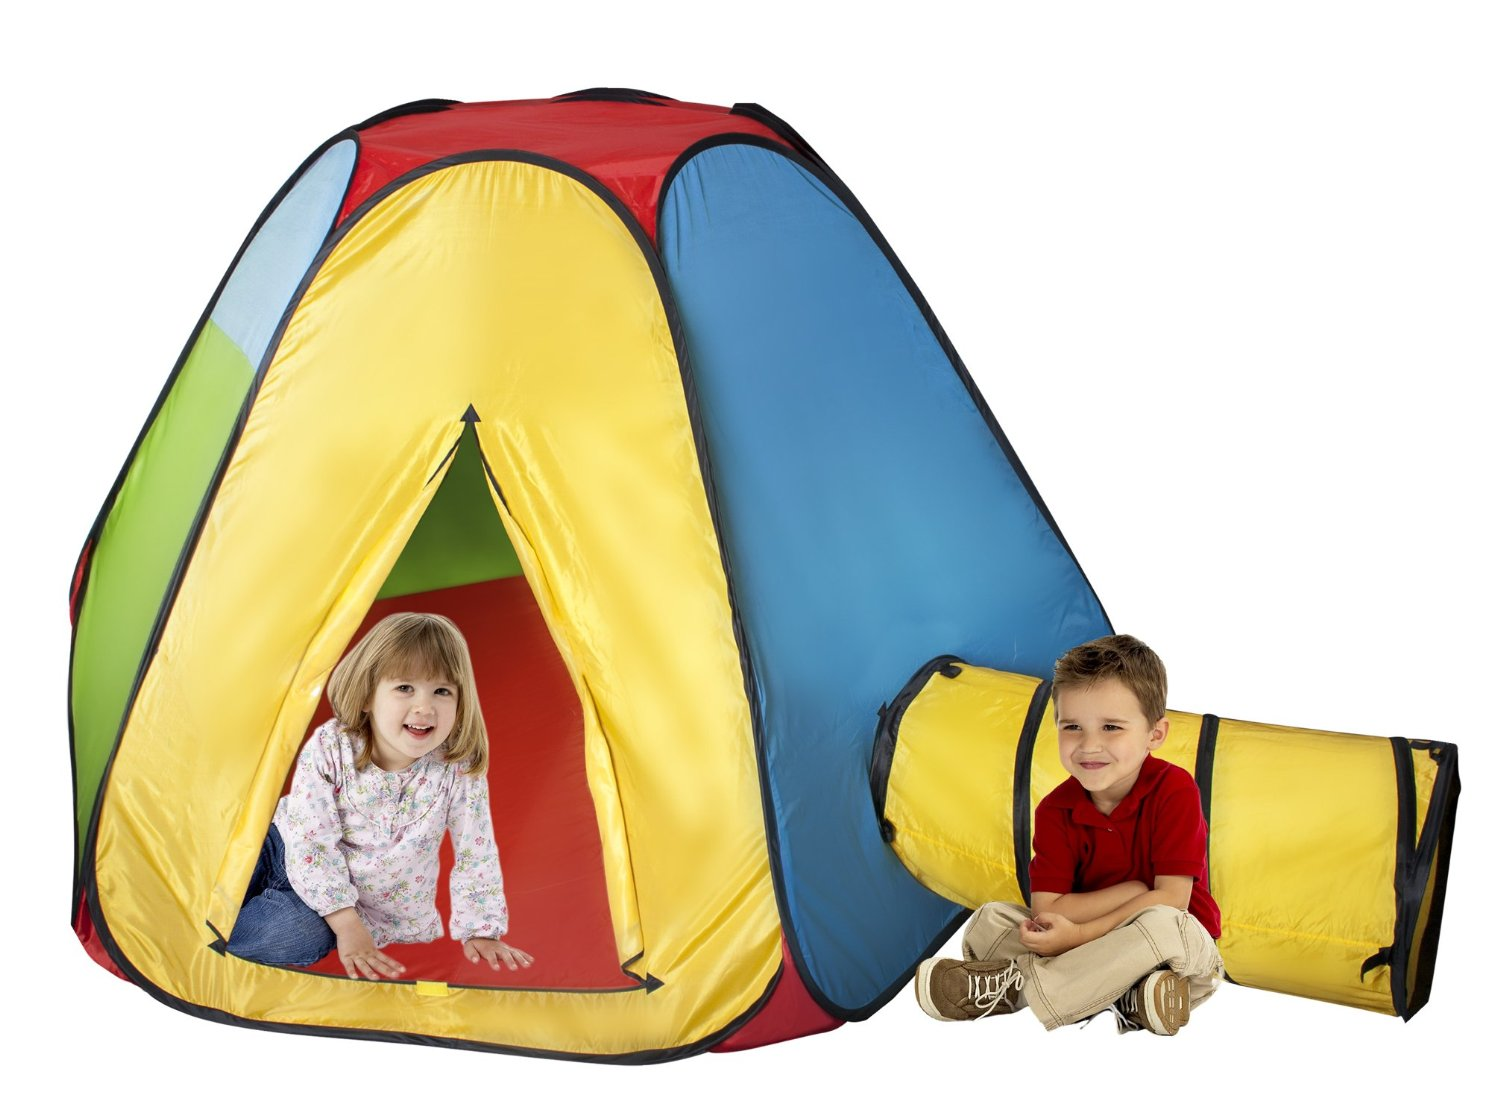 Hexagon Playhut Tent u0026 Tunnel  sc 1 st  Brands On Sale & Hexagon Playhut Tent u0026 Tunnel | Kids Playhuts and Tents ...